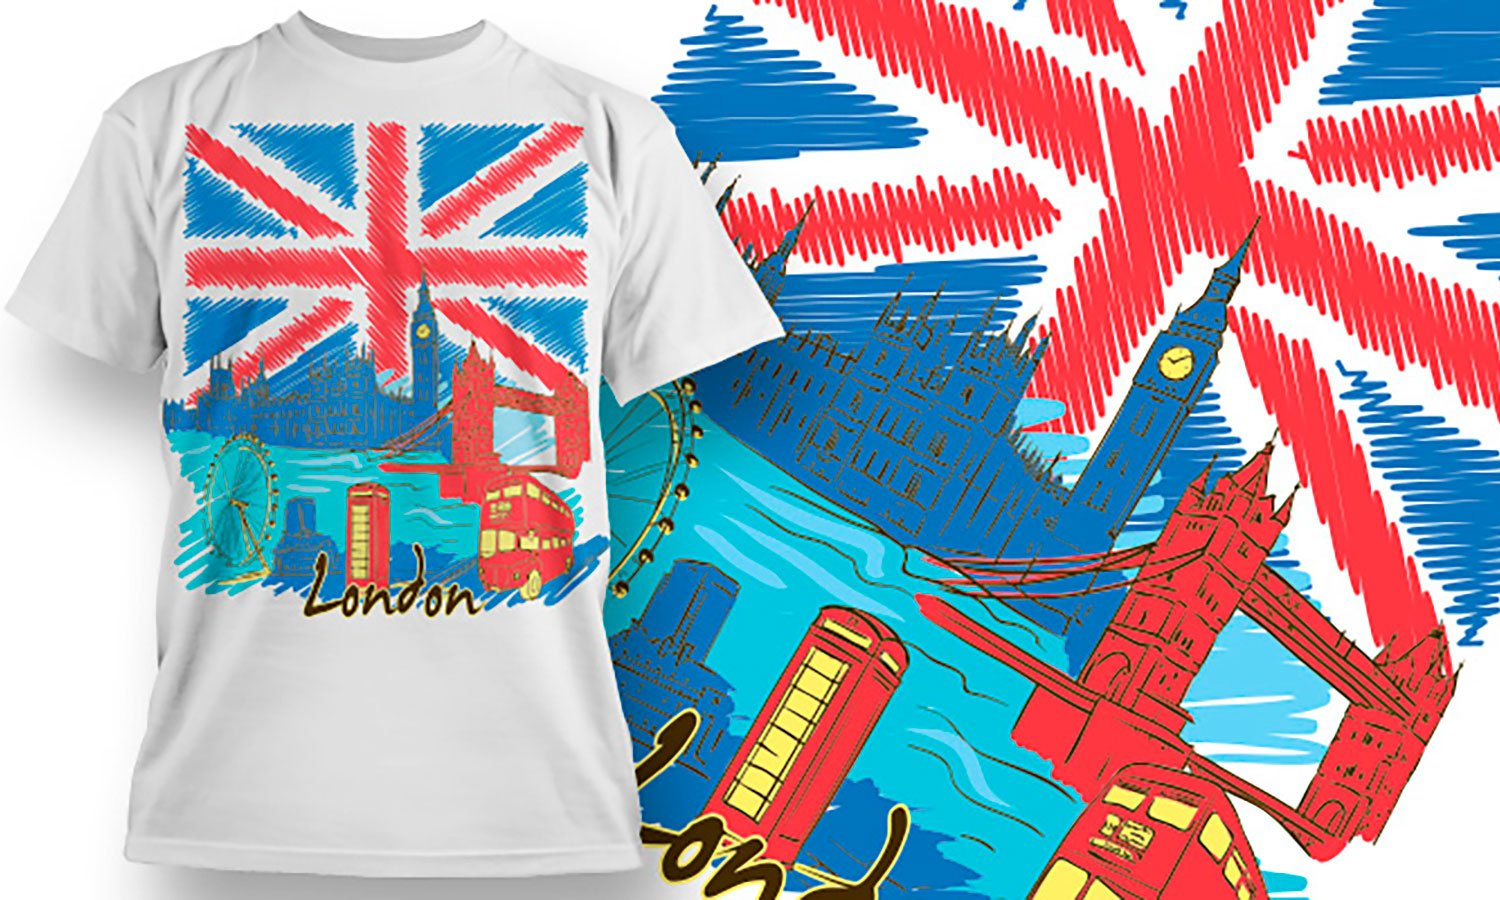 London - Printed T-Shirt for Men, Women and Kids - TS117